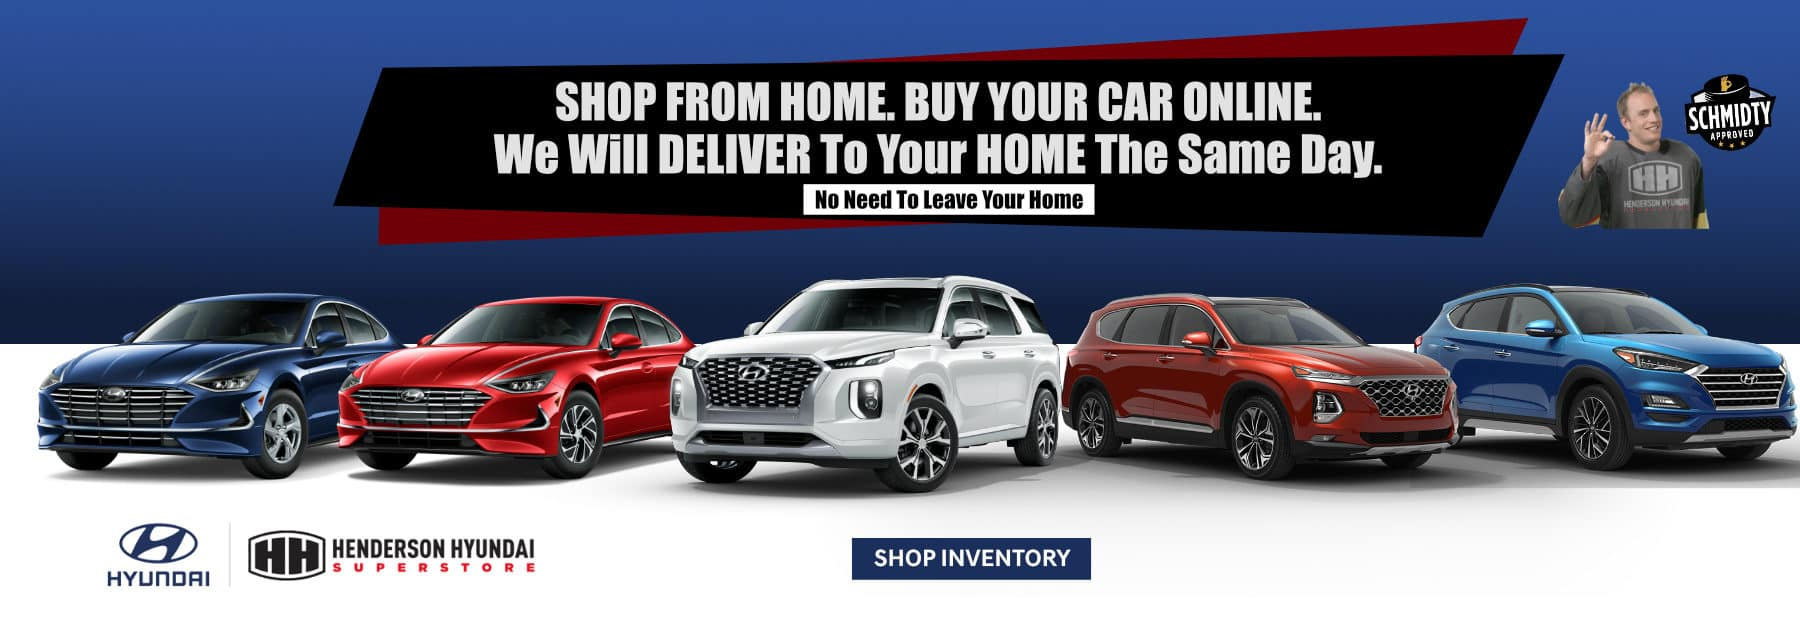 November-2020 Shop From Home_Henderson Hyundai (1)